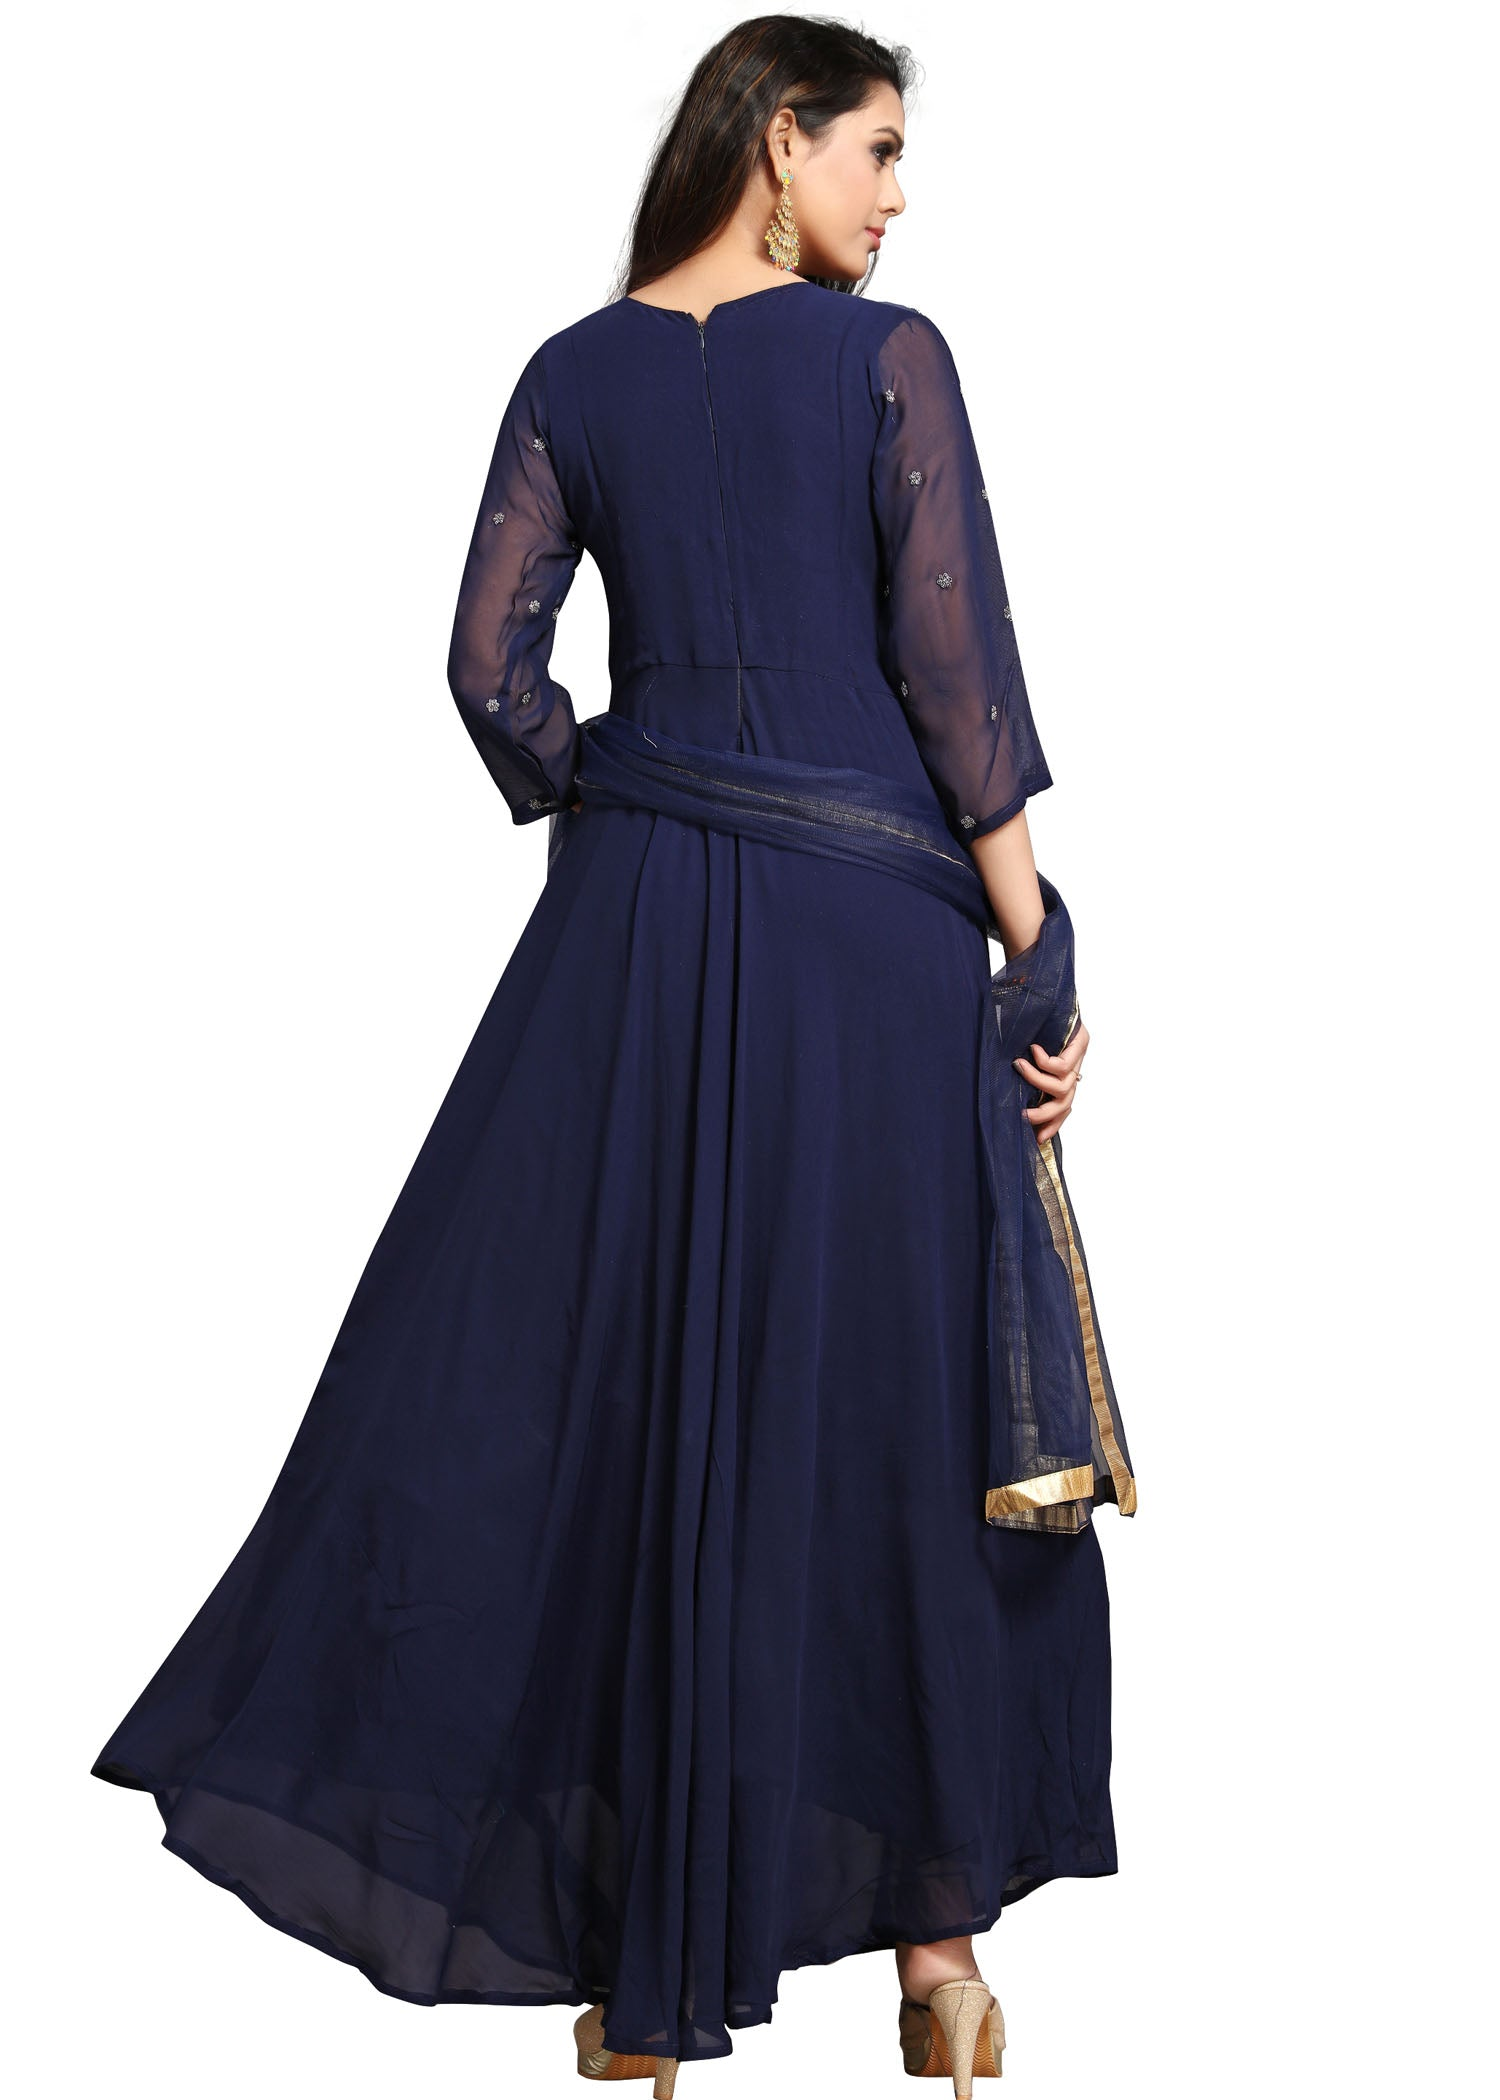 Georgette Flared Dress - Indigo Blue